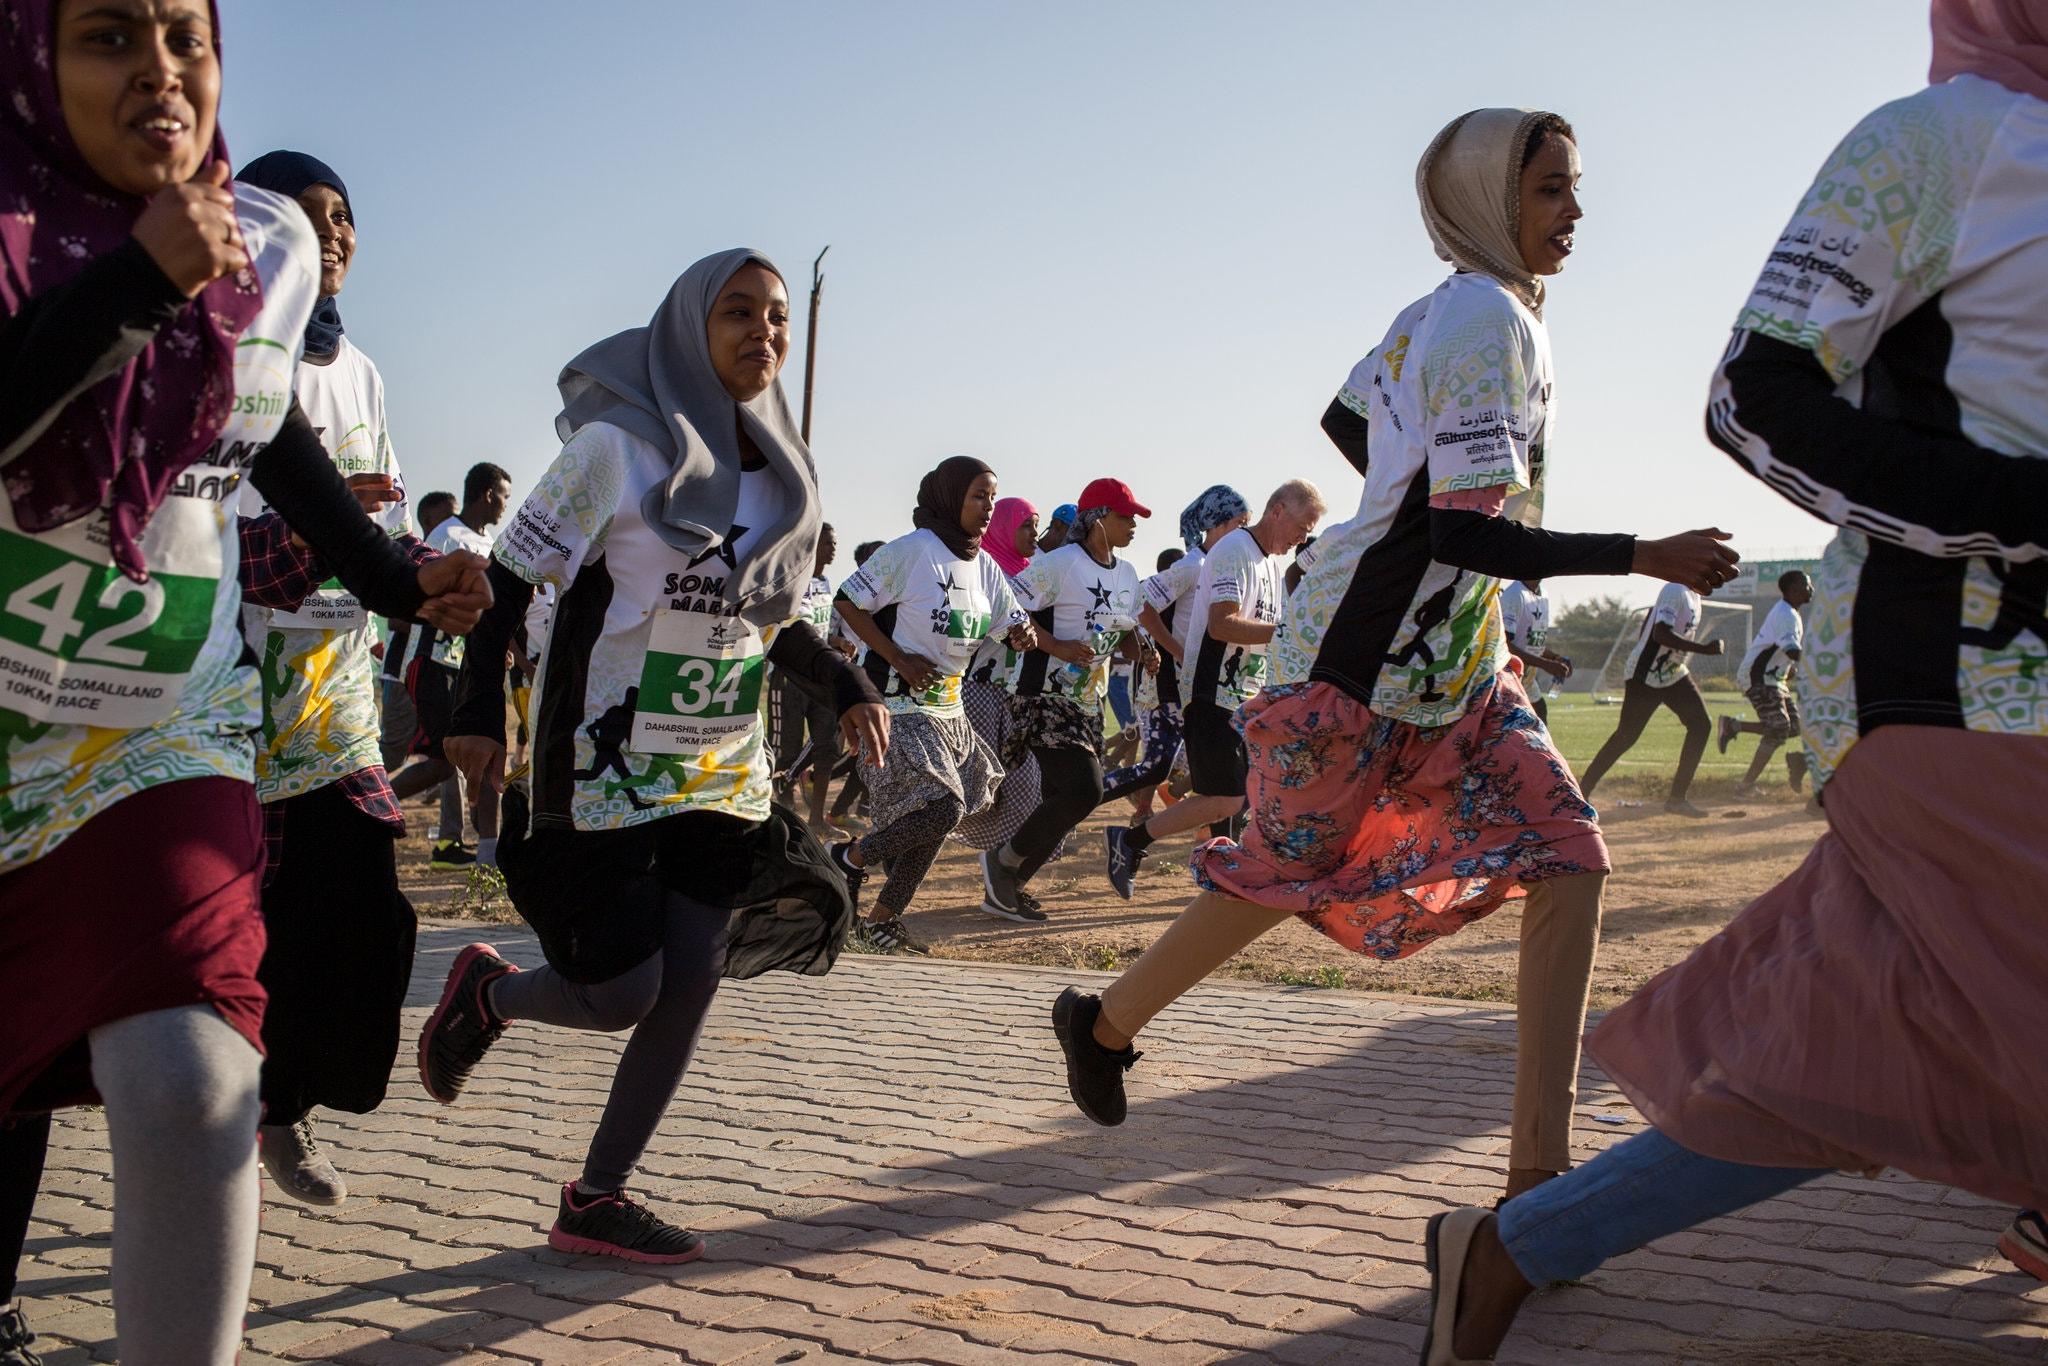 'I Feel Strong and Free': Running Takes Hold Among Women in Somaliland